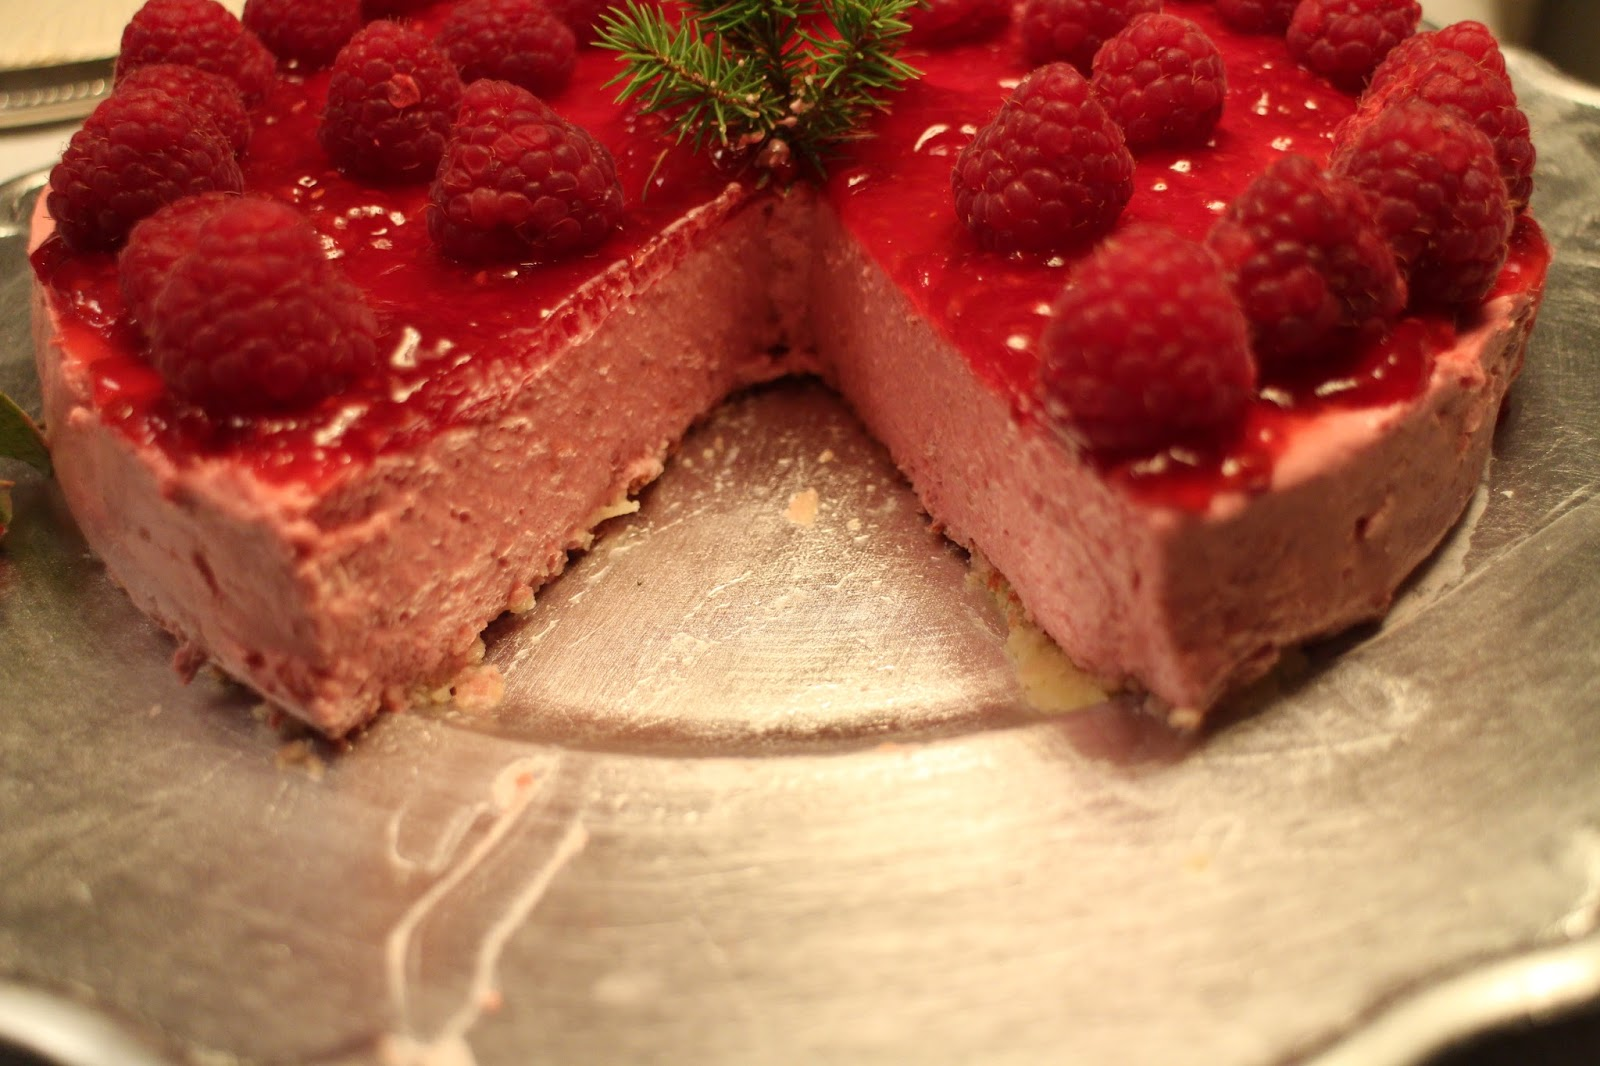 cheesecake-de-frambuesas-sin-horno, raspberry-cheesecake